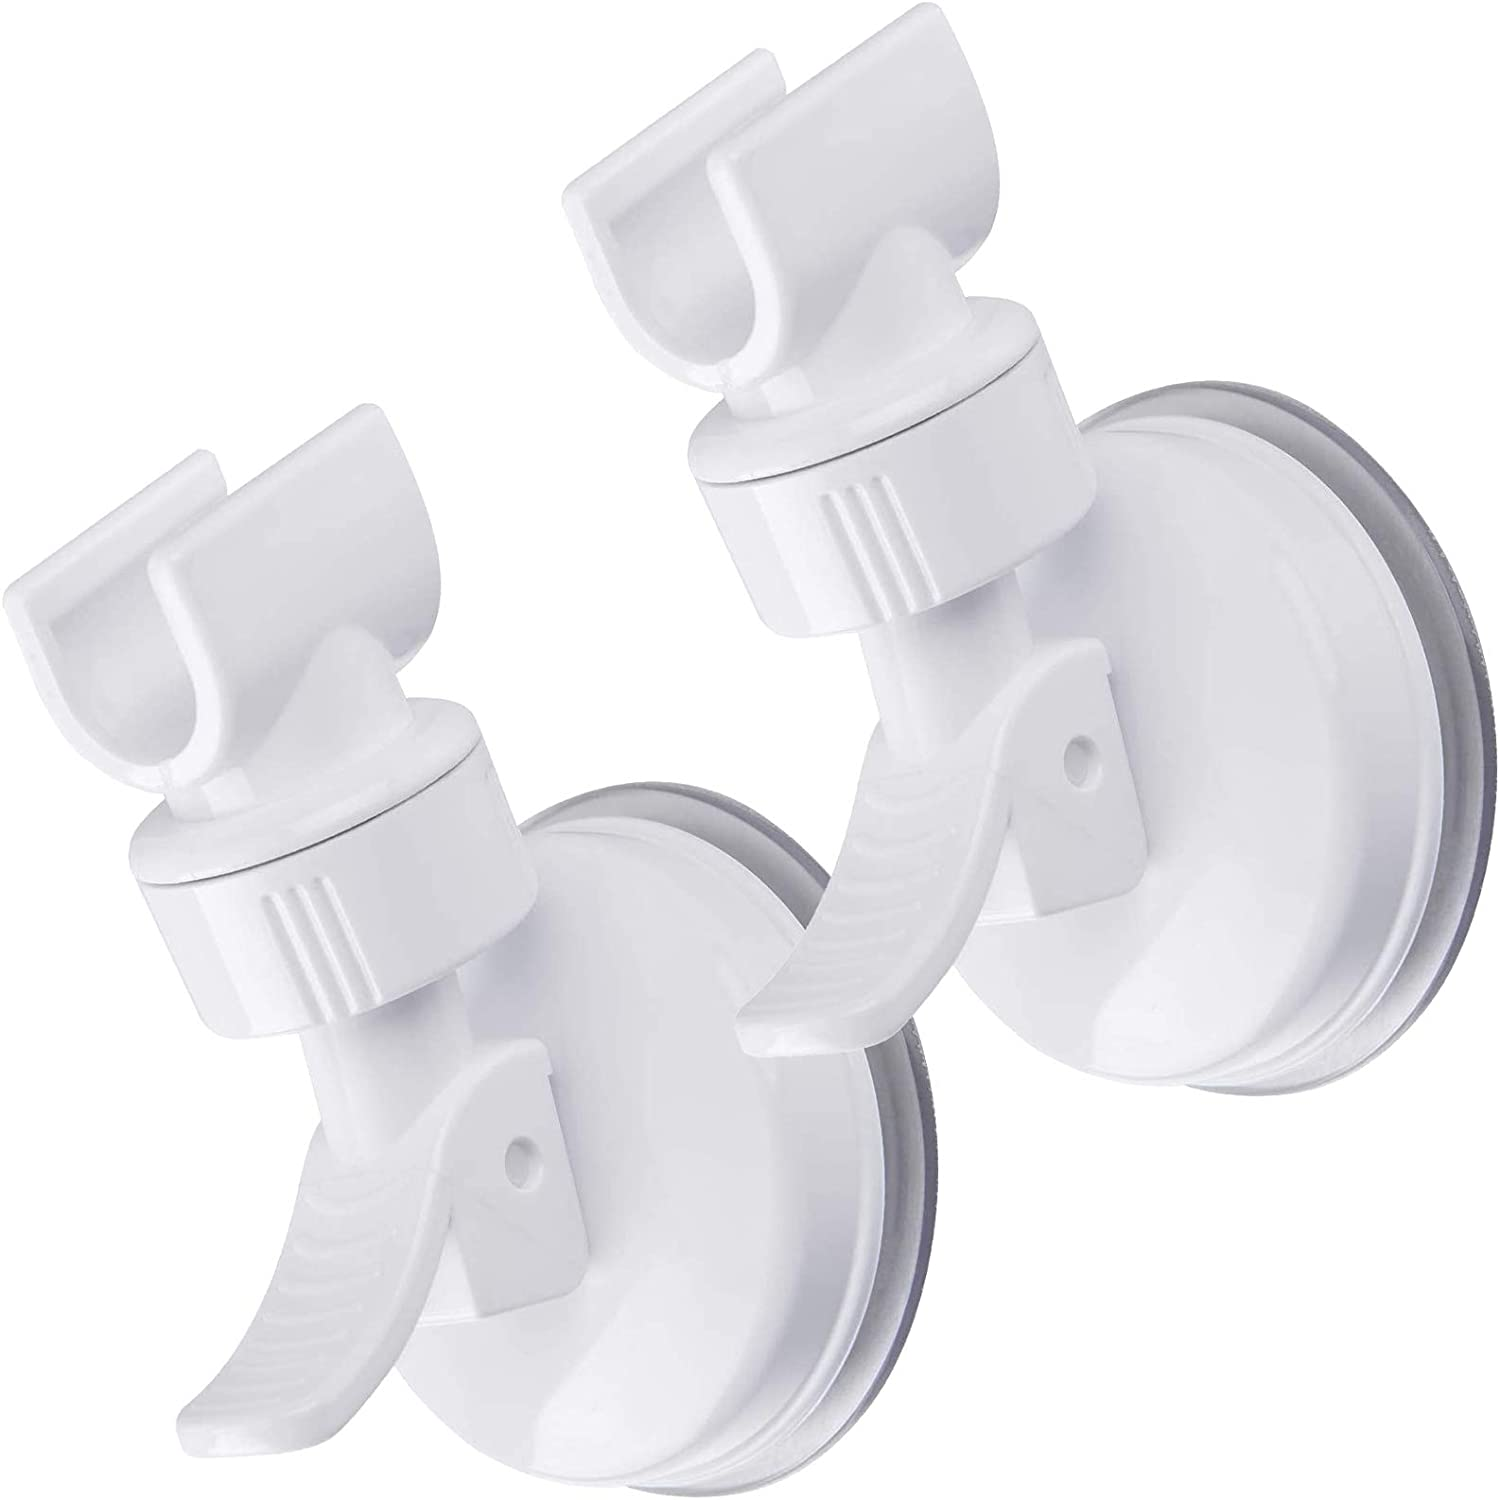 OUO Adjustable Shower Head holder 2pcs white Removable Handheld Showerhead /& Wall Mounted Suction Bracket Bathroom Suction Cup Handheld Shower head Bracket